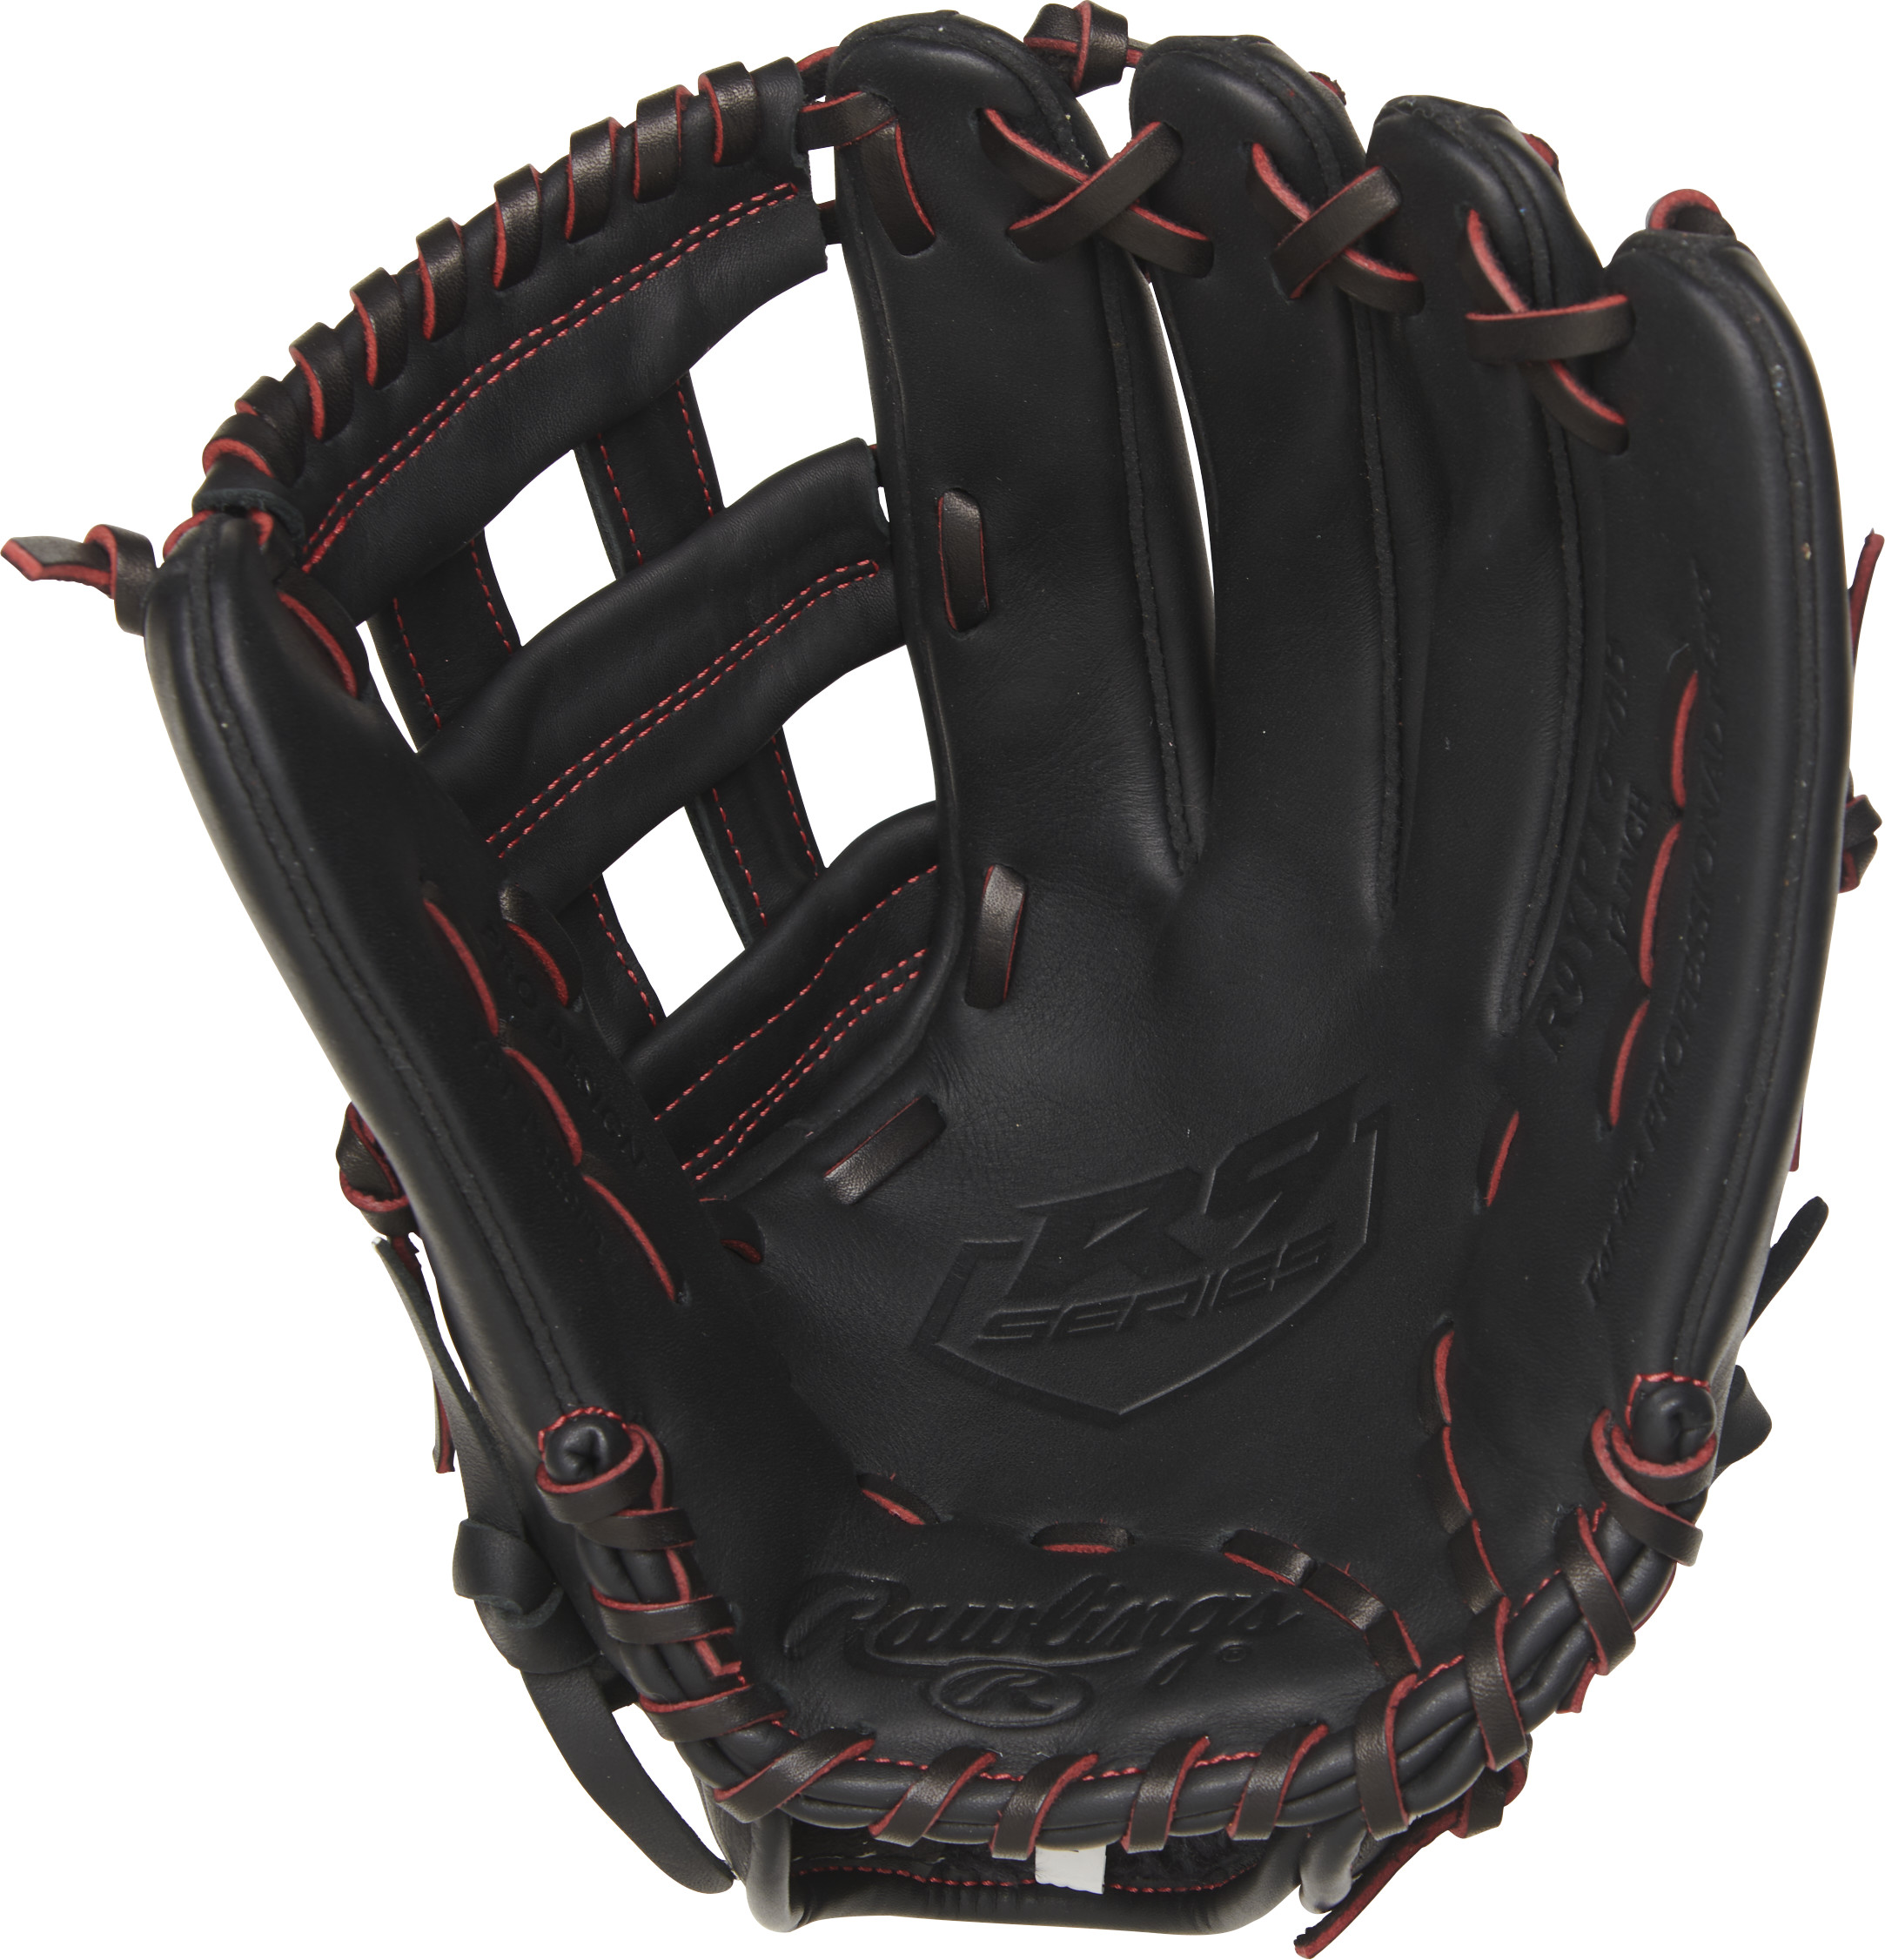 http://www.bestbatdeals.com/images/gloves/rawlings/R9YPT6-6B-1.jpg